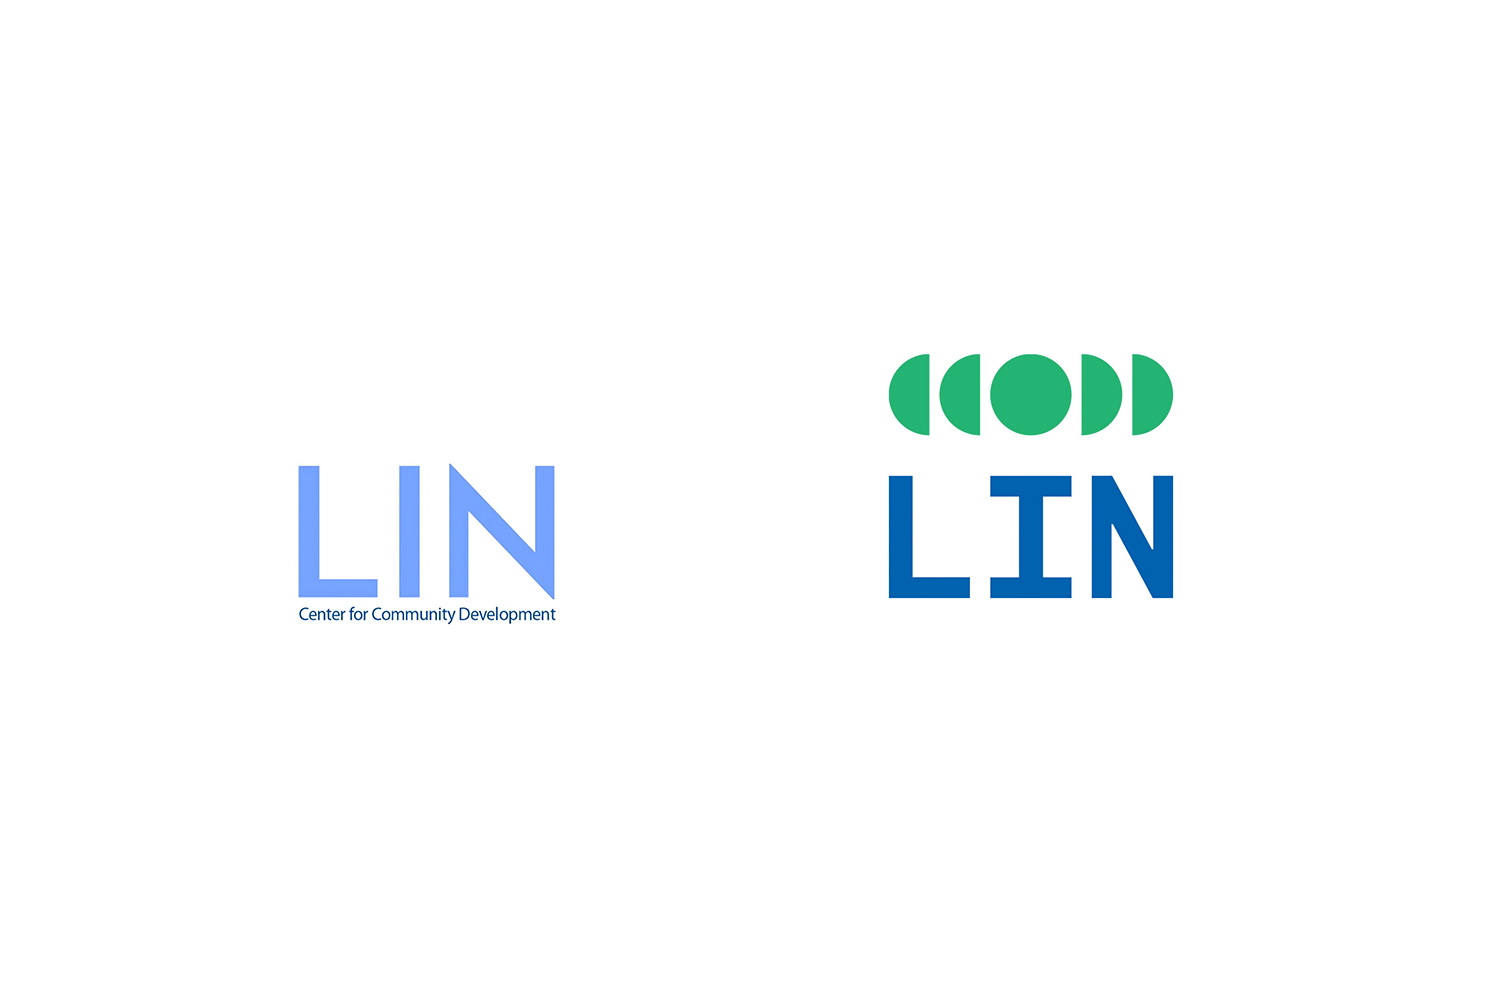 LIN old and new logo comparision